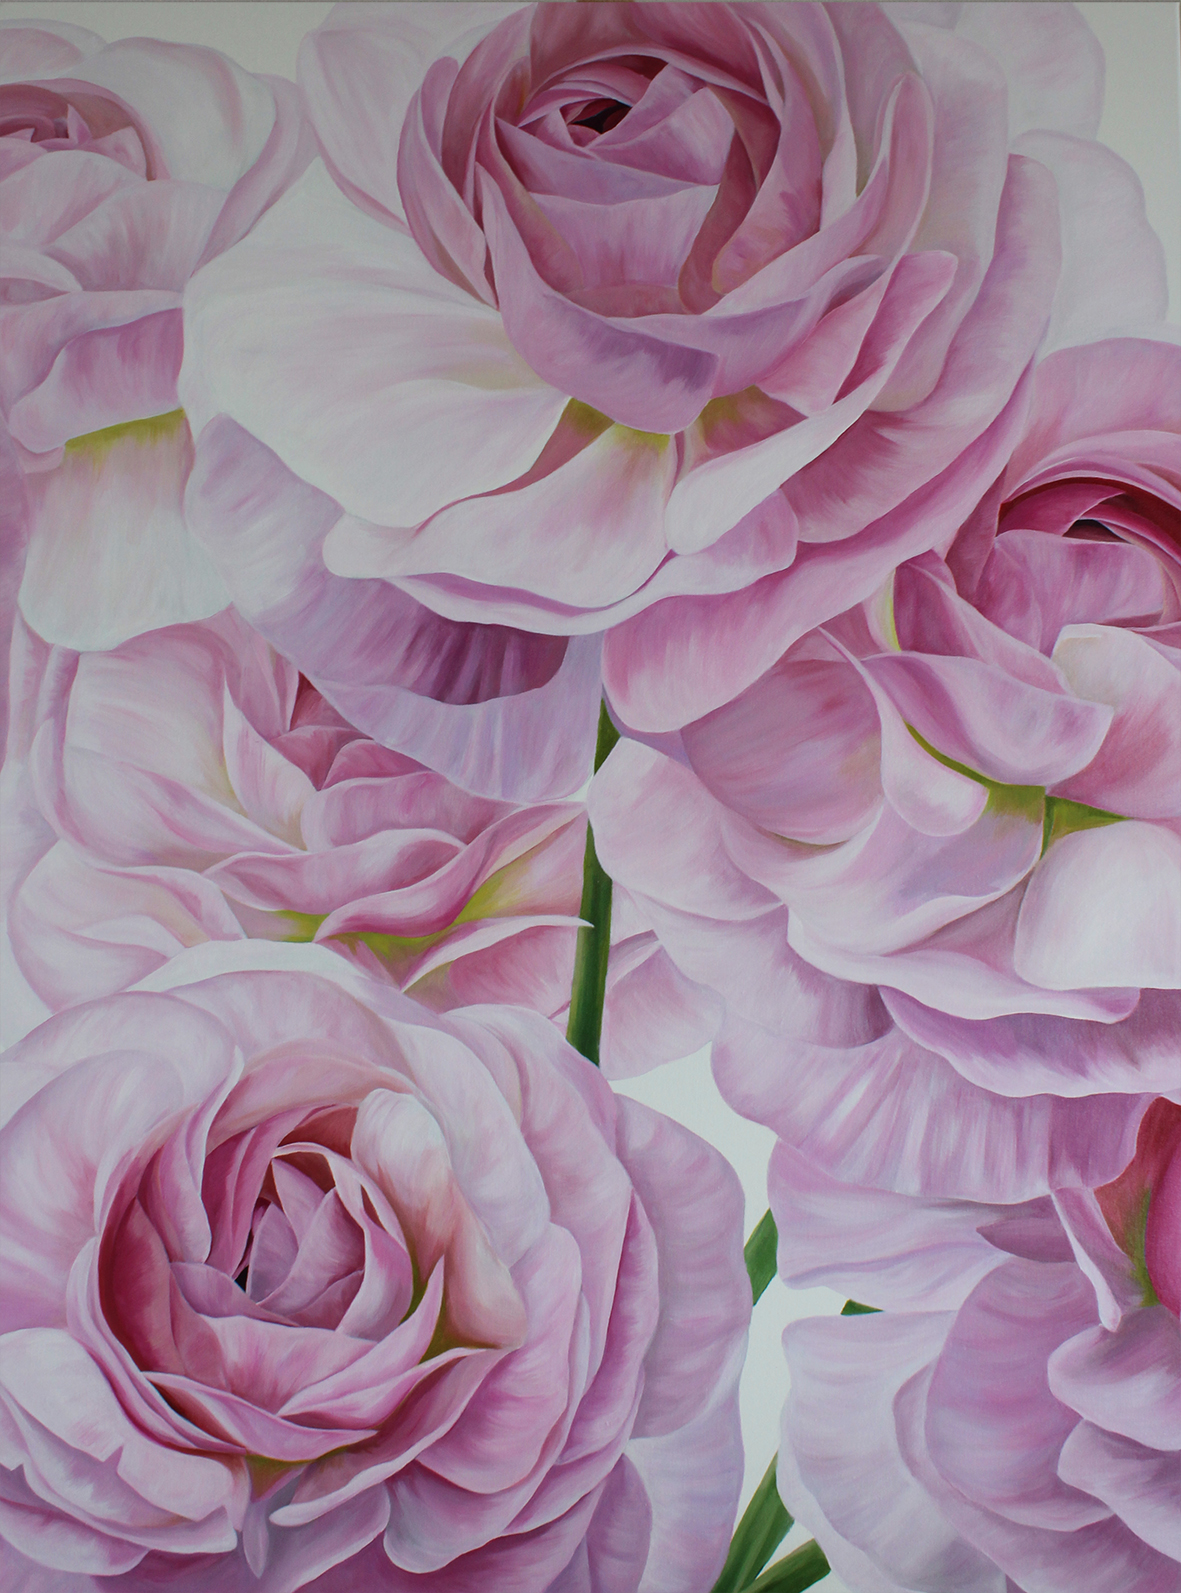 RANUNCULUS  36X48 INCHES  ACRYLIC ON CANVAS  PRIVATE COMMISSION